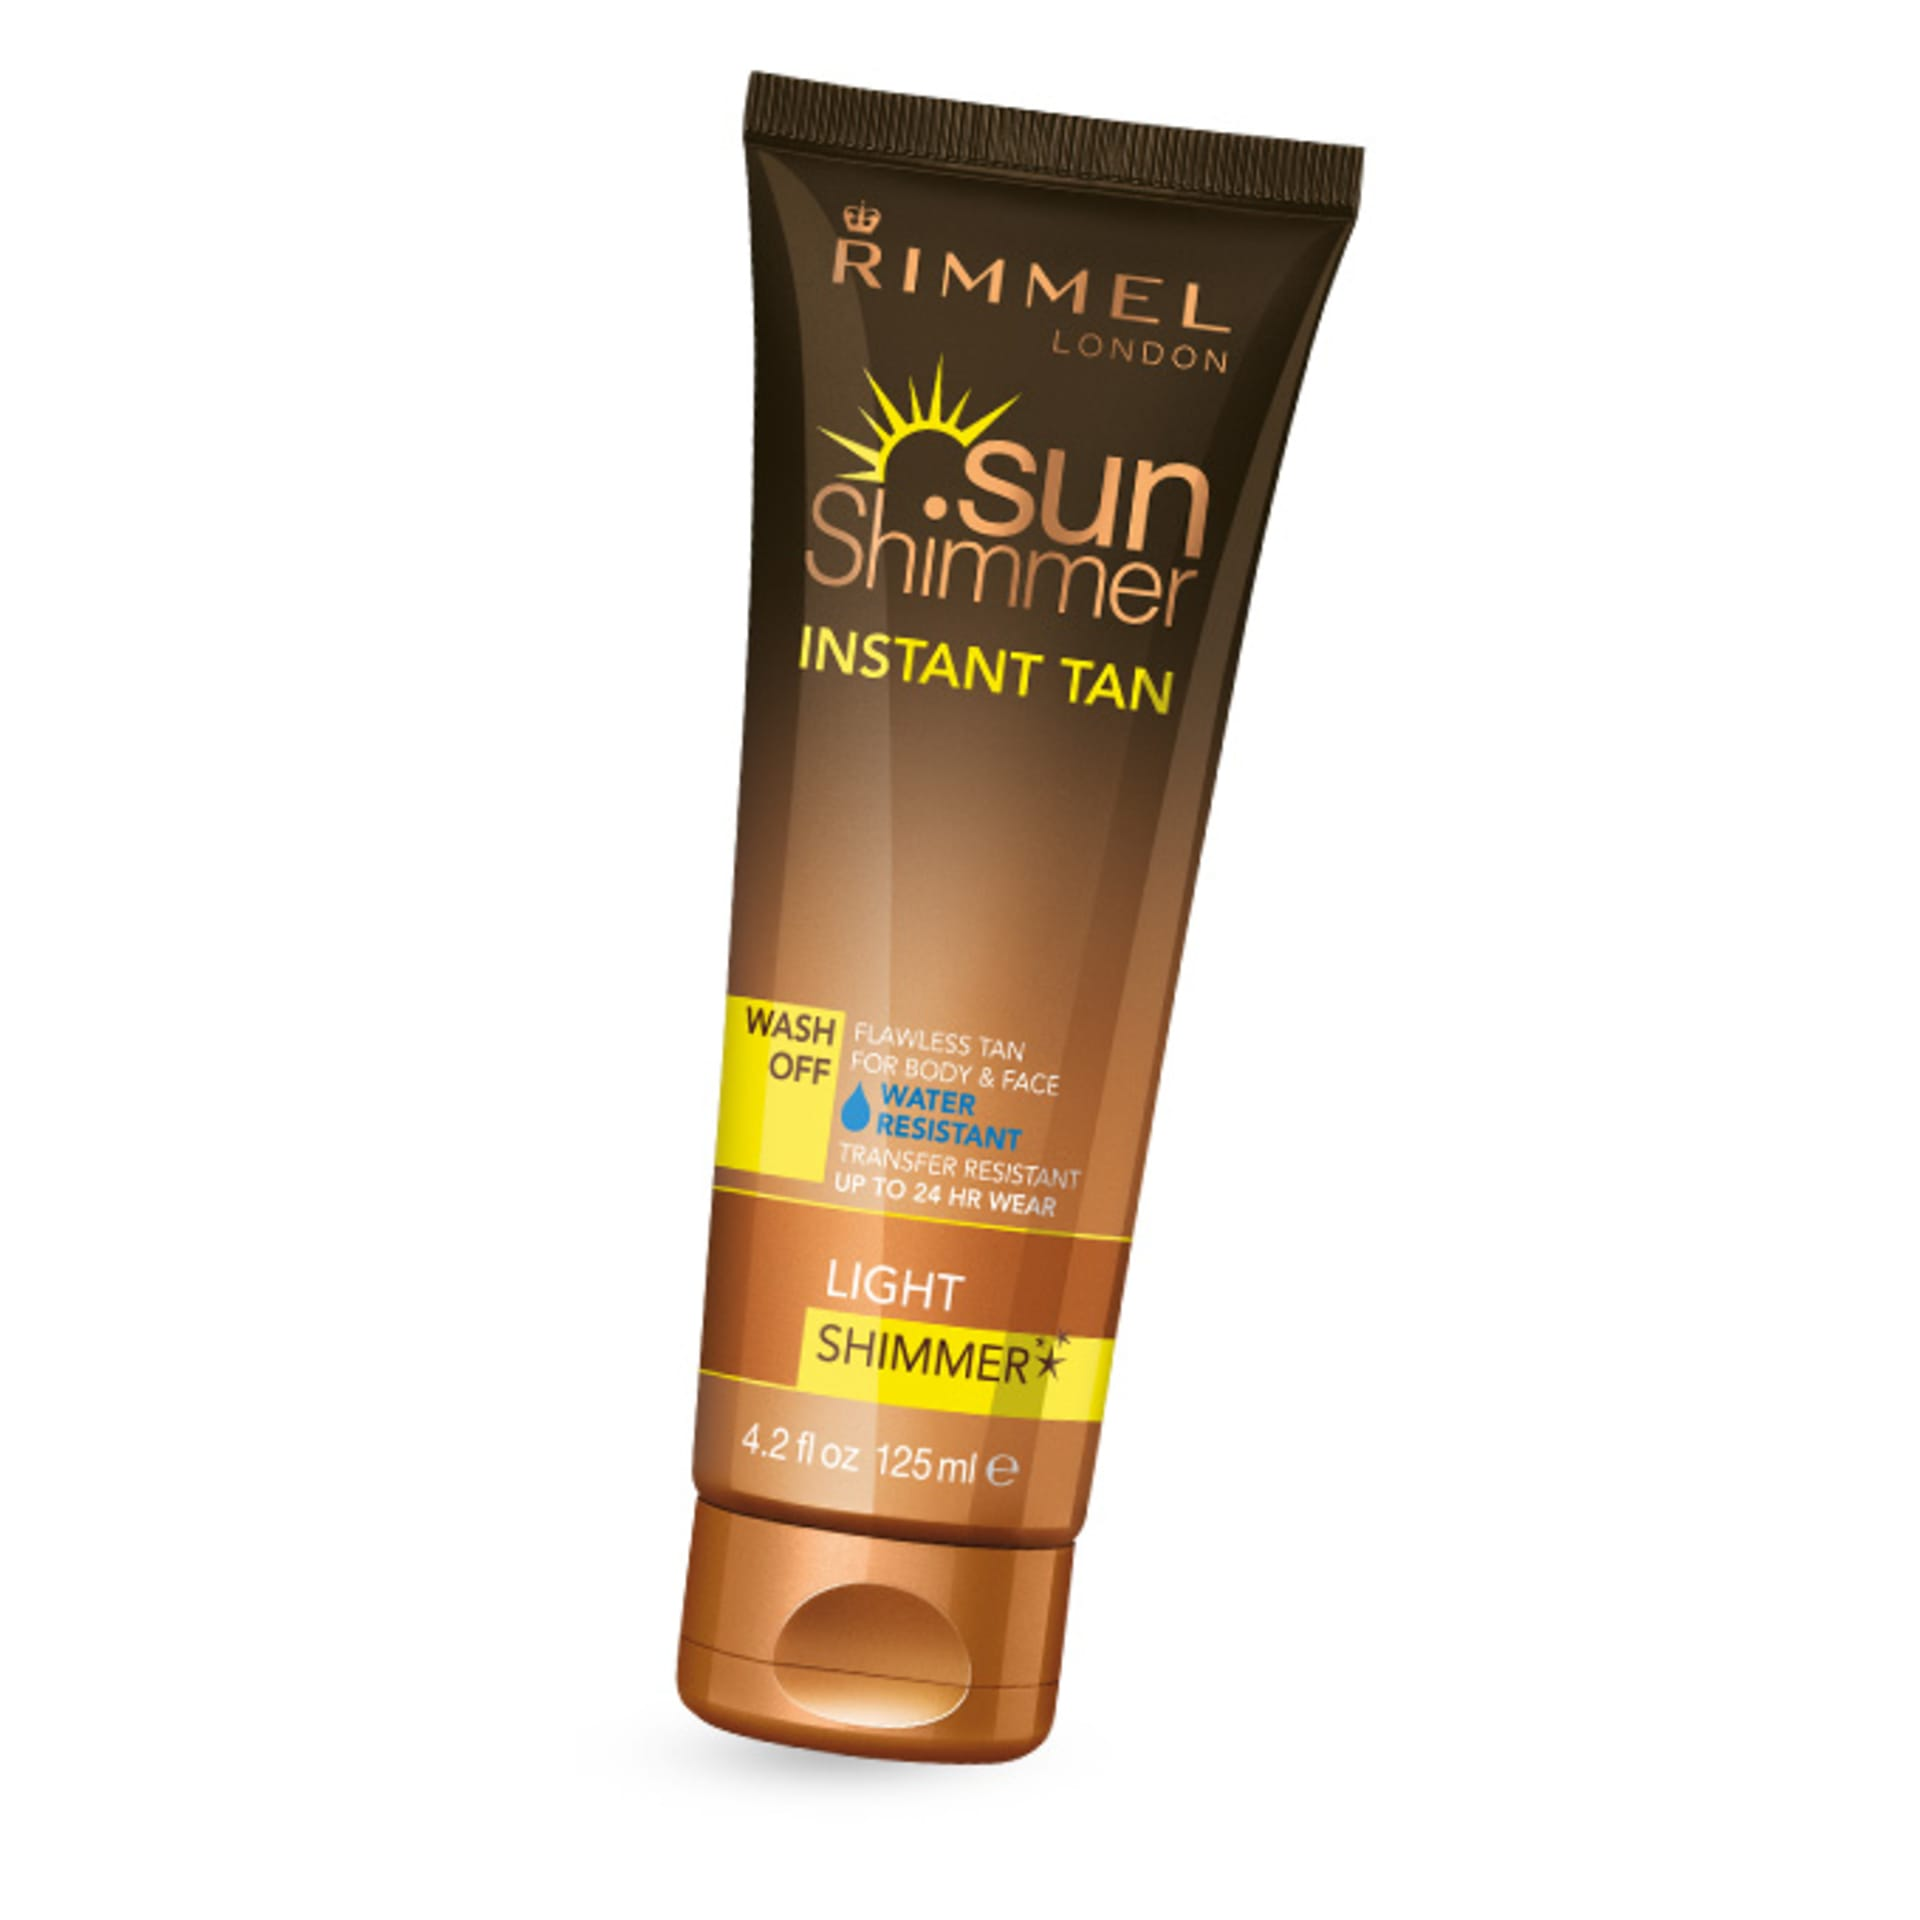 SunShimmer Instant Tan Shimmer Water Resistant - Light Shimmer